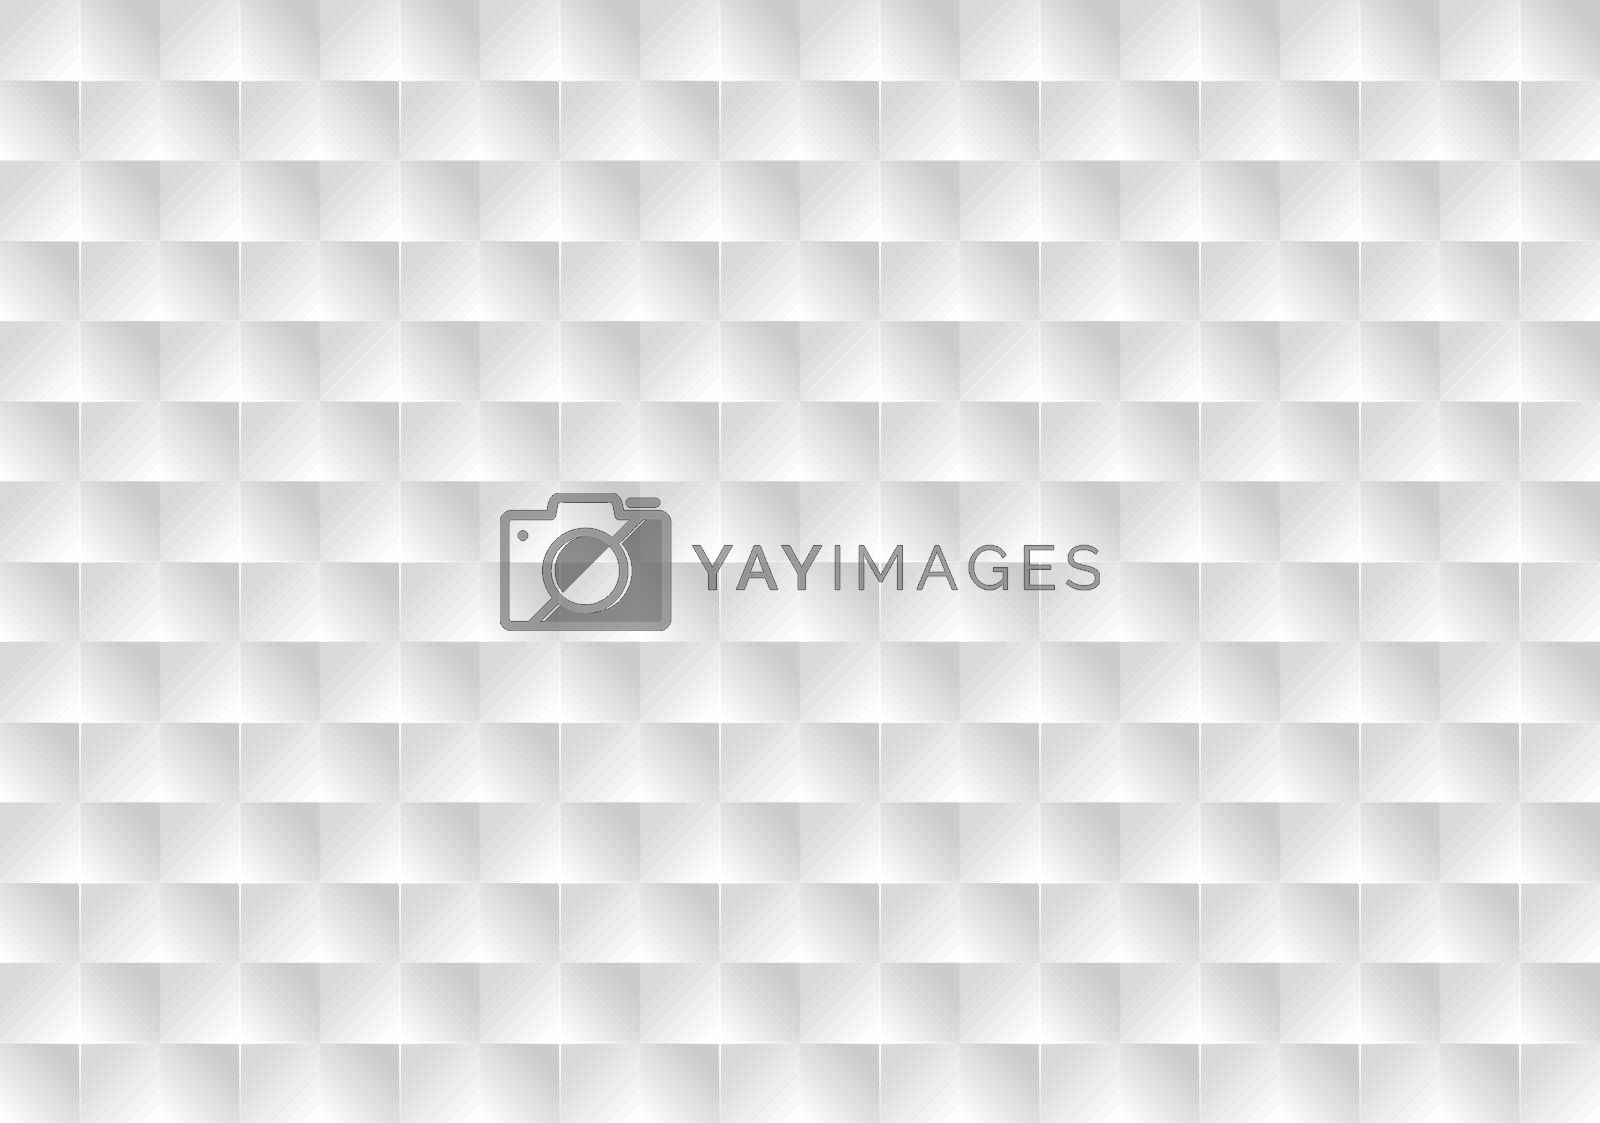 Squared Seamless Texture by illustratorCZ